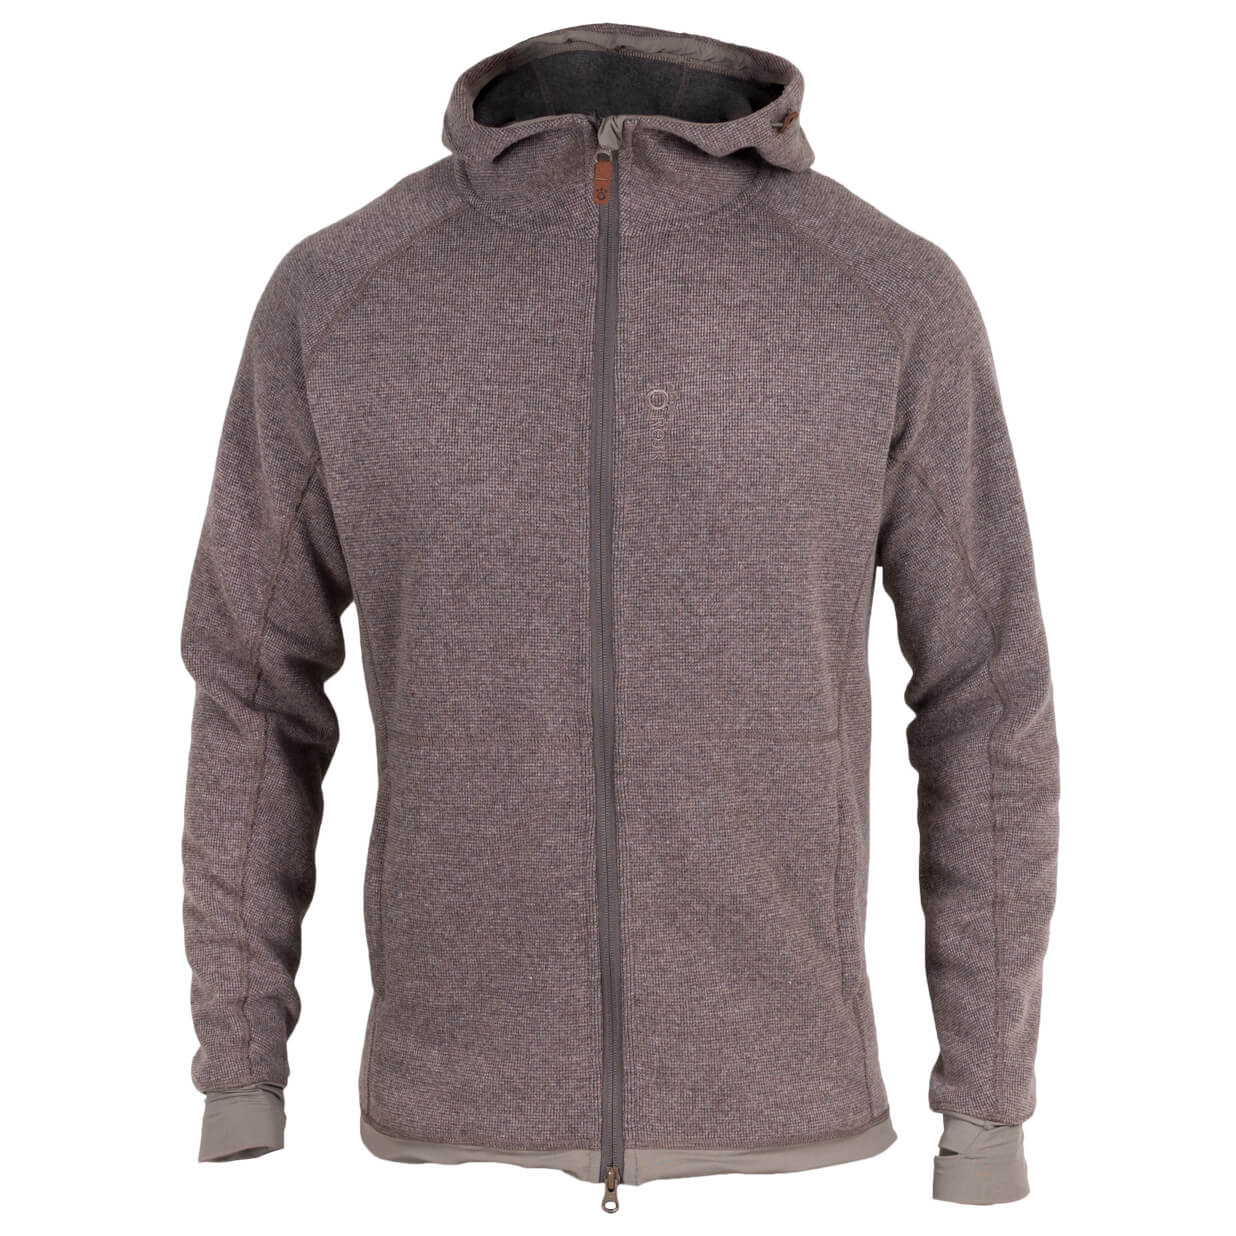 faf454c5 Röjk Eskimo Hoodie - Wool Jacket Men's | Free UK Delivery ...